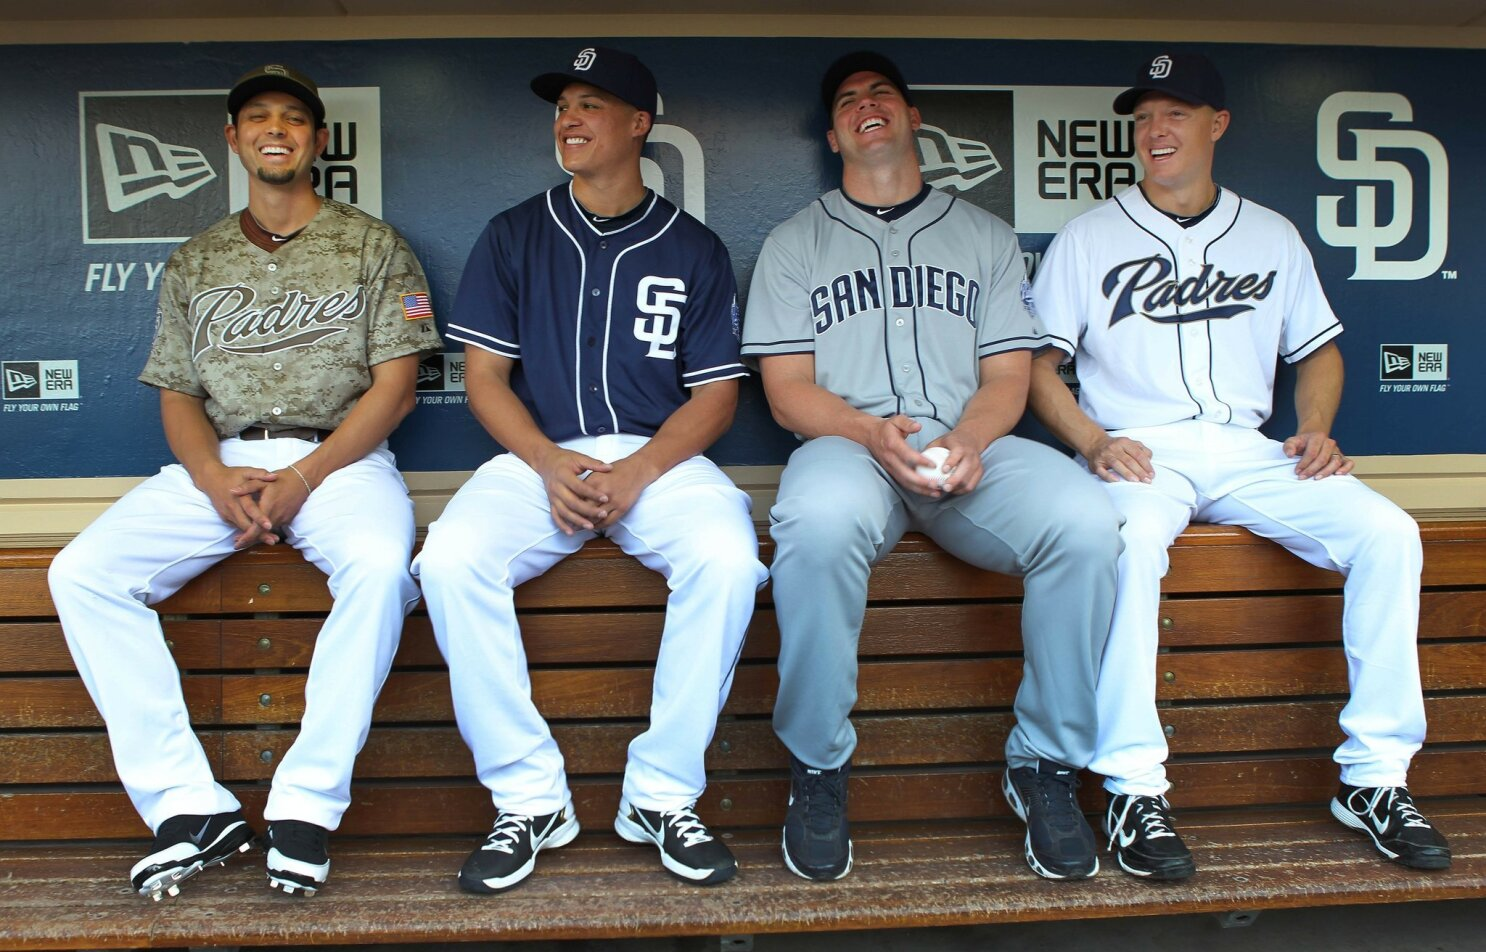 d7d2b5a0df1 Padres unveil new uniforms for 2012 - The San Diego Union-Tribune